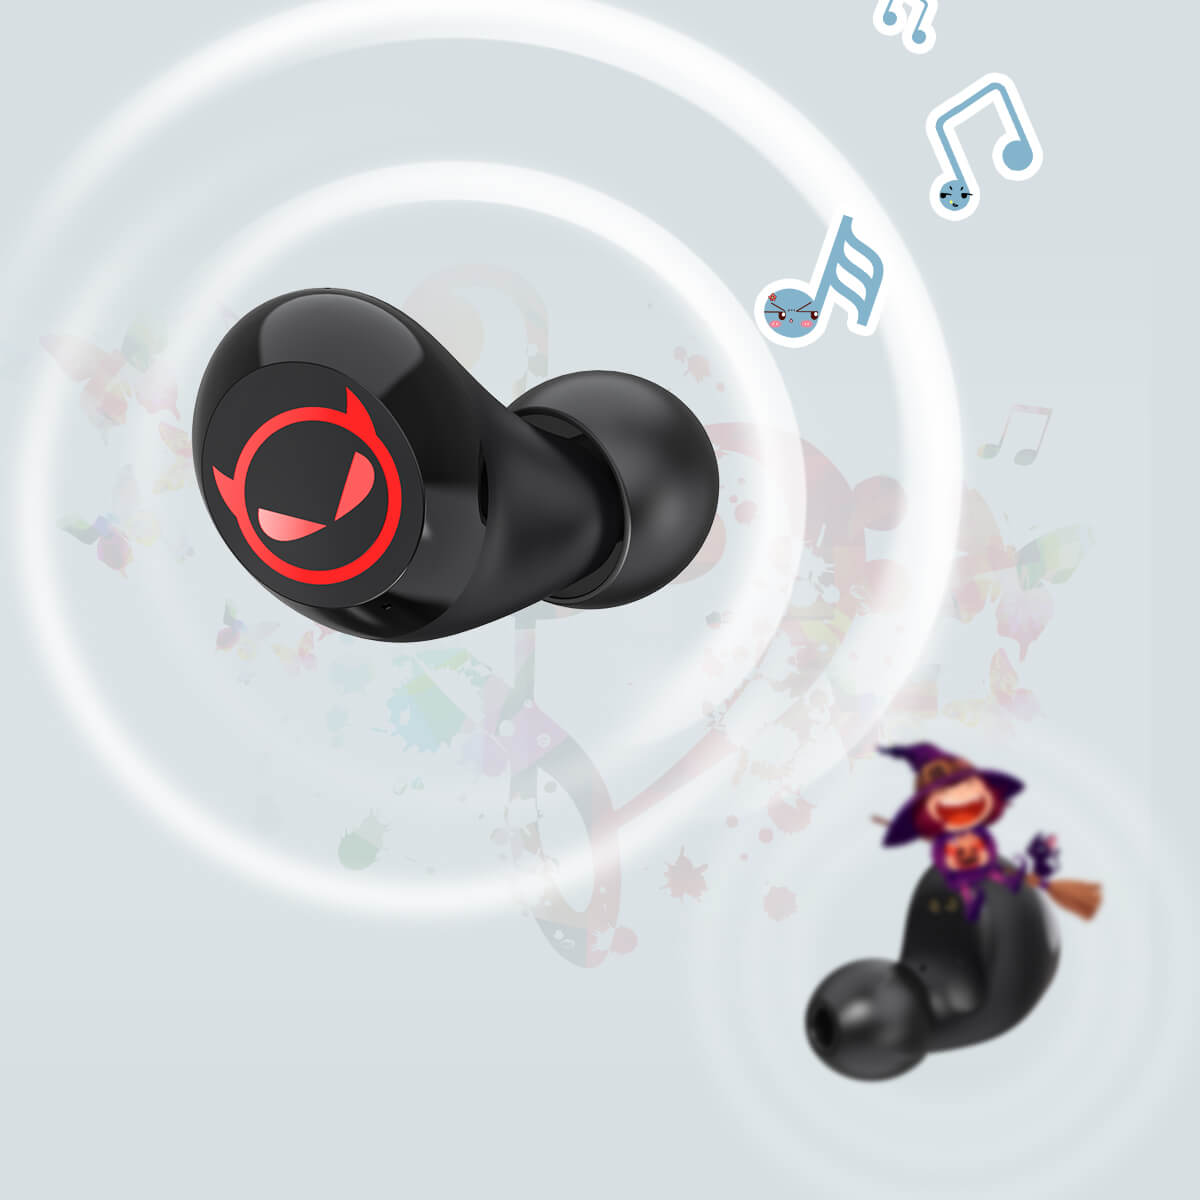 holyhigh-cute-little-devil-earphones-g8-details-4